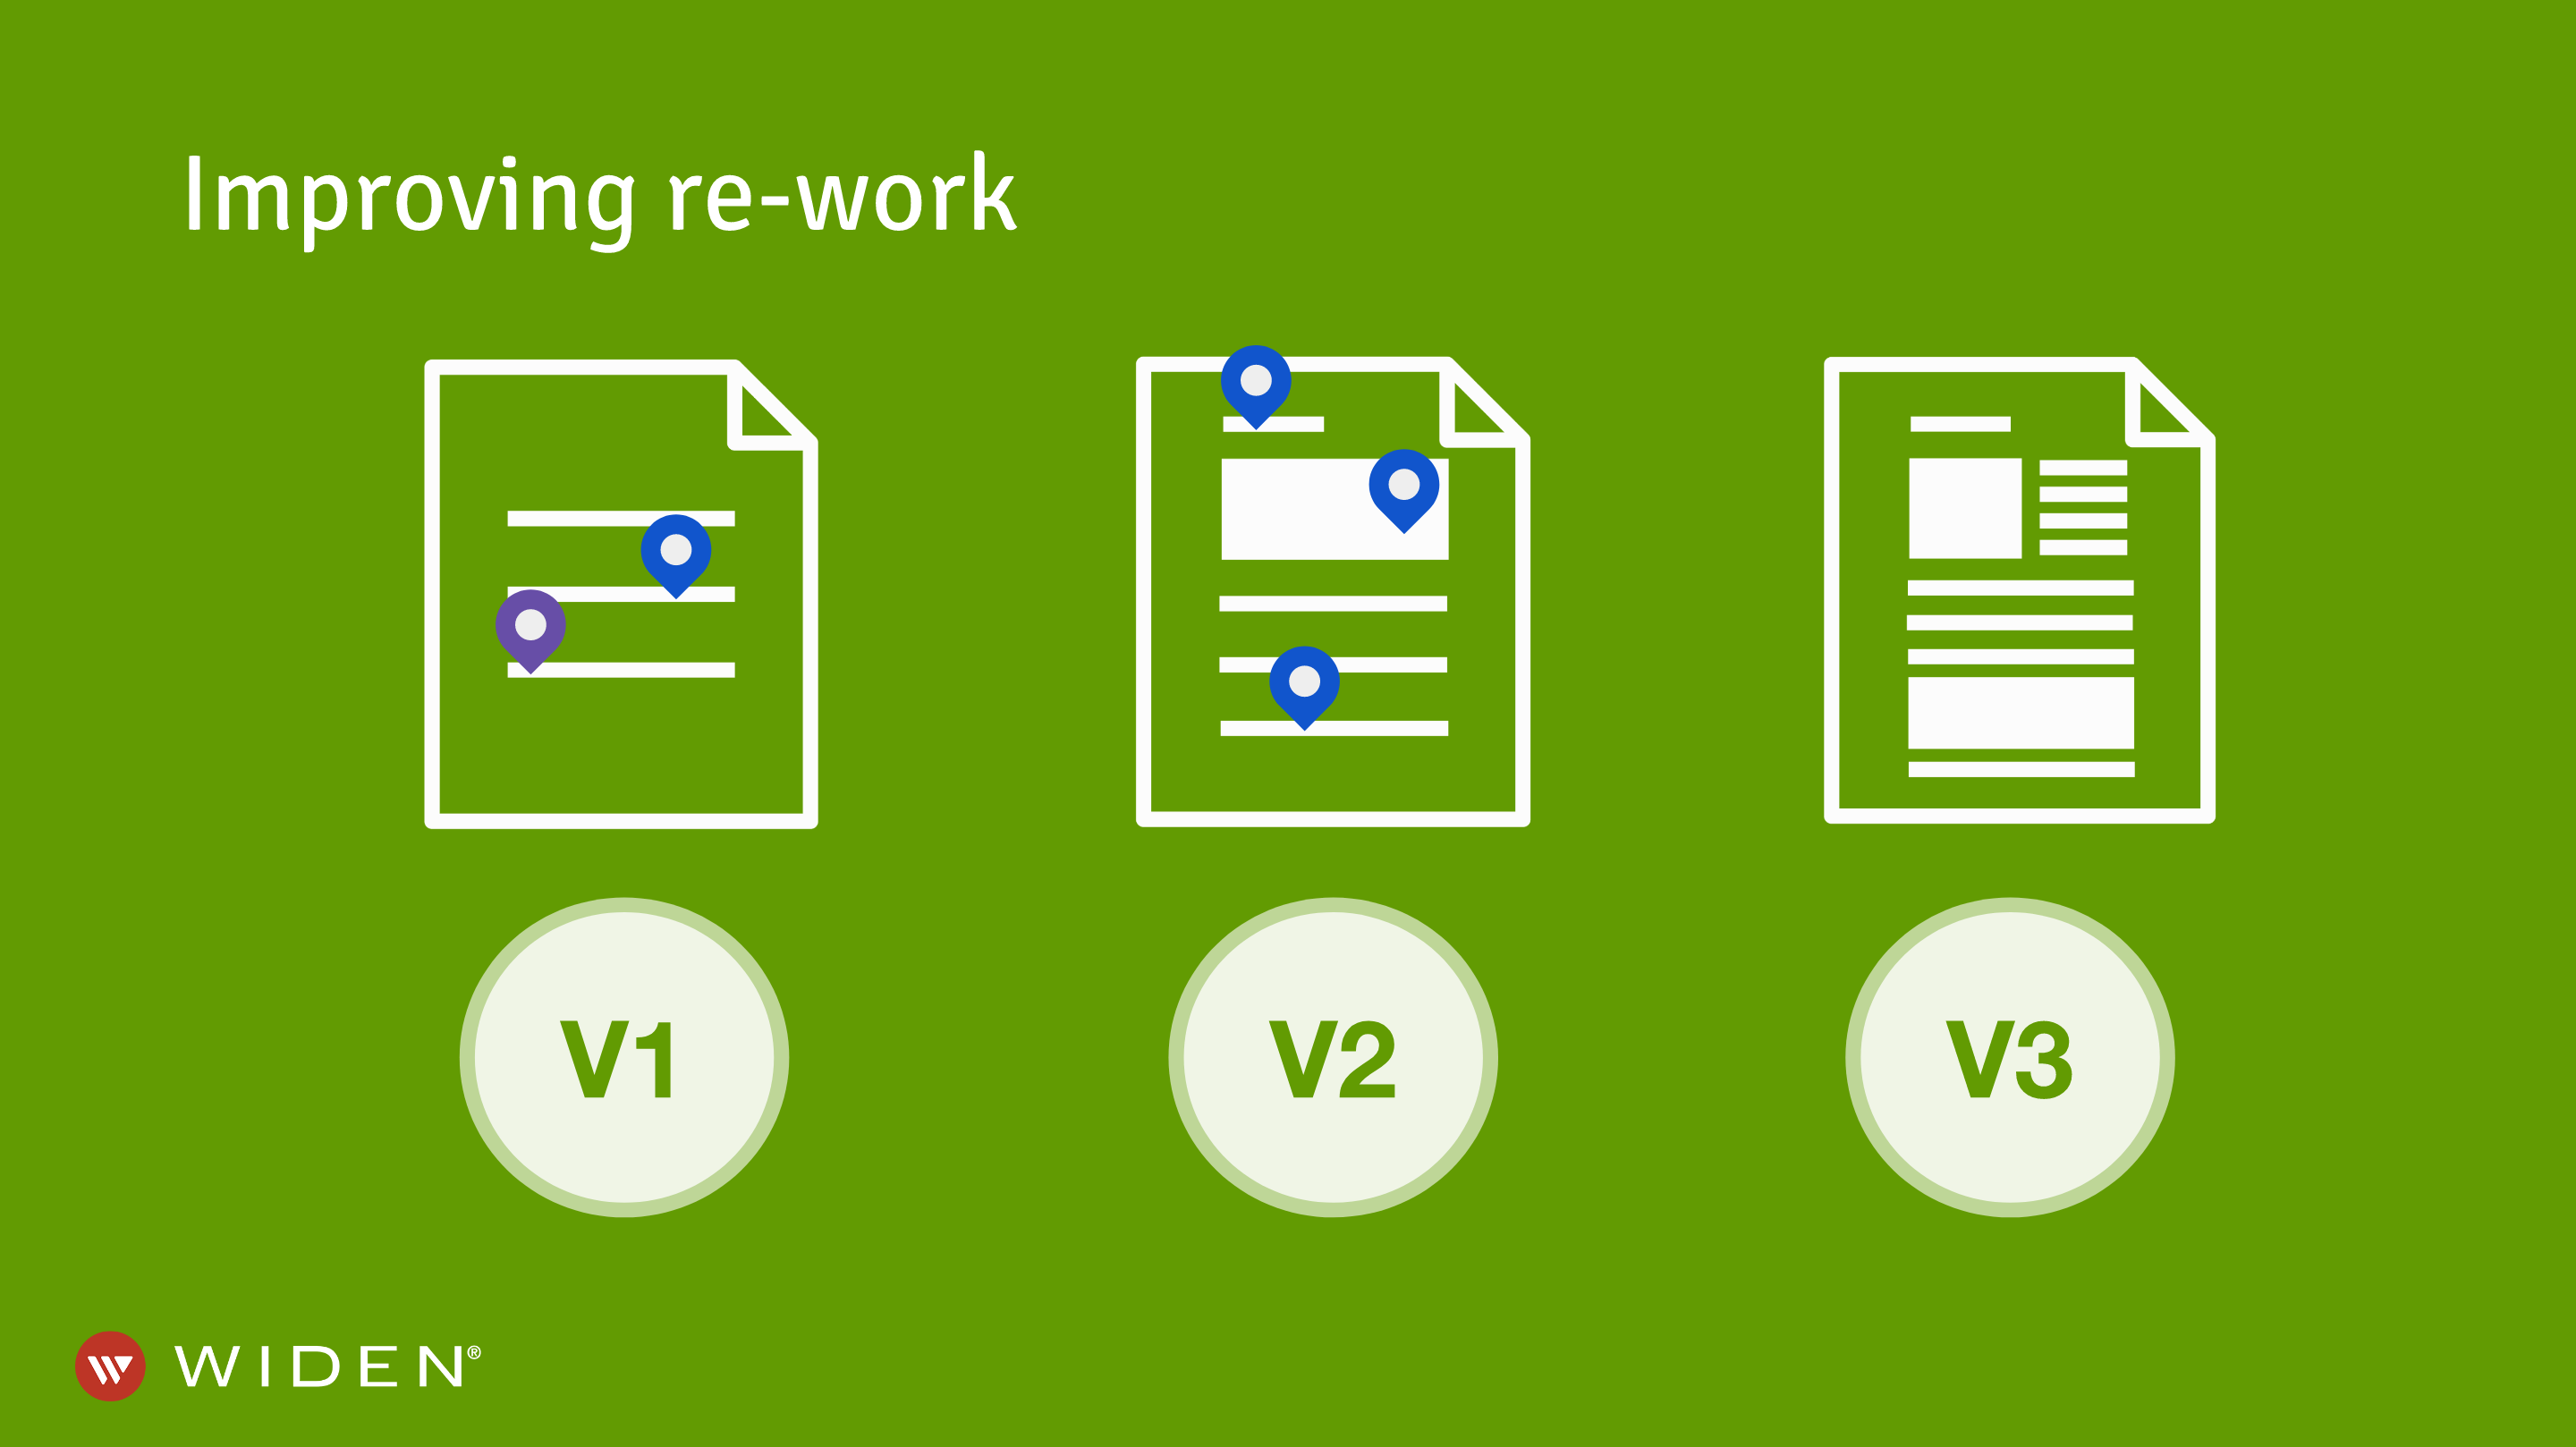 Workflow Helps with Management of Versions